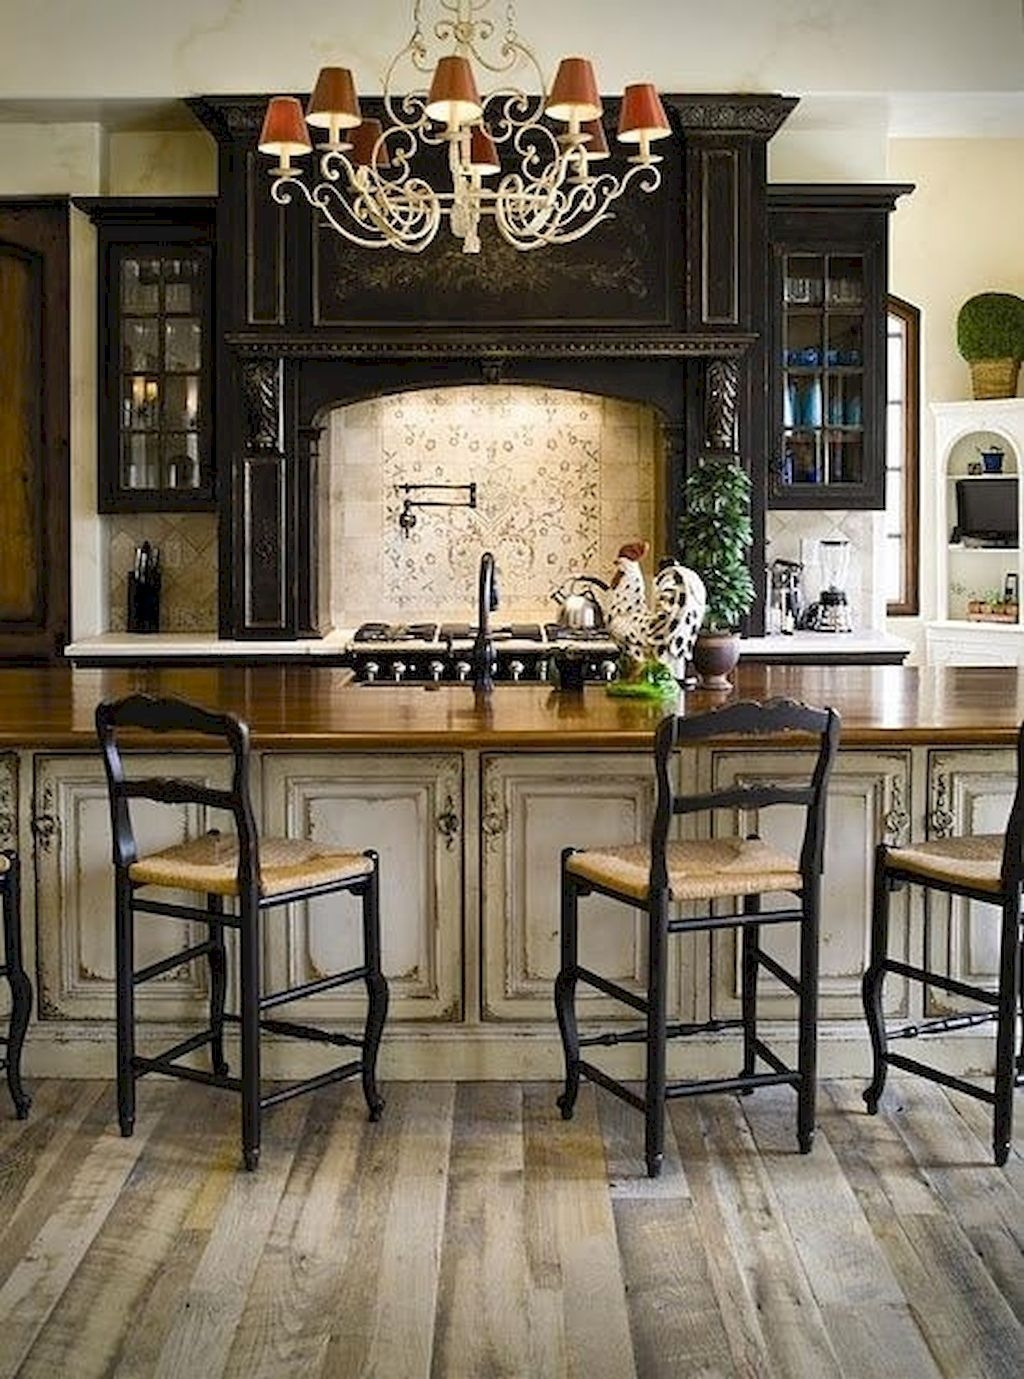 The Best French Country Style Kitchen Decor Ideas 08